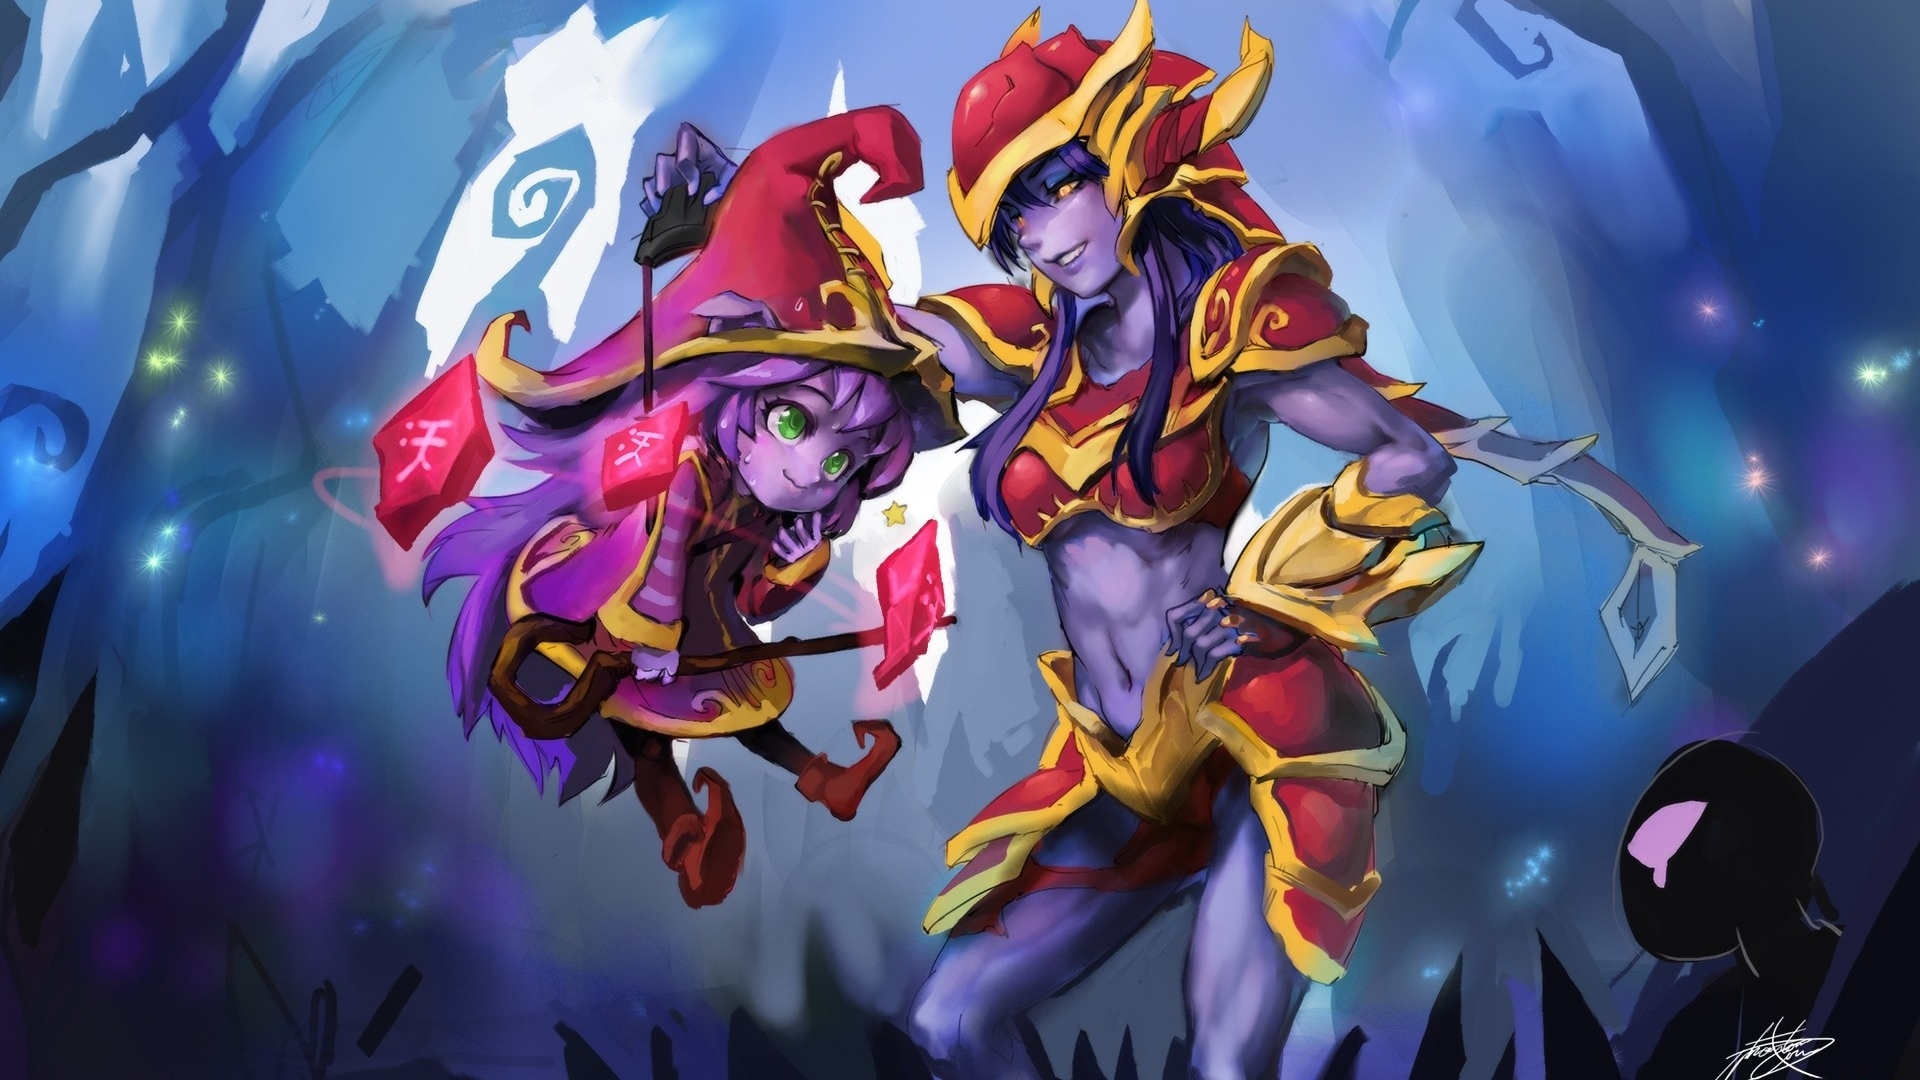 Lulu & Shyvana wallpaper